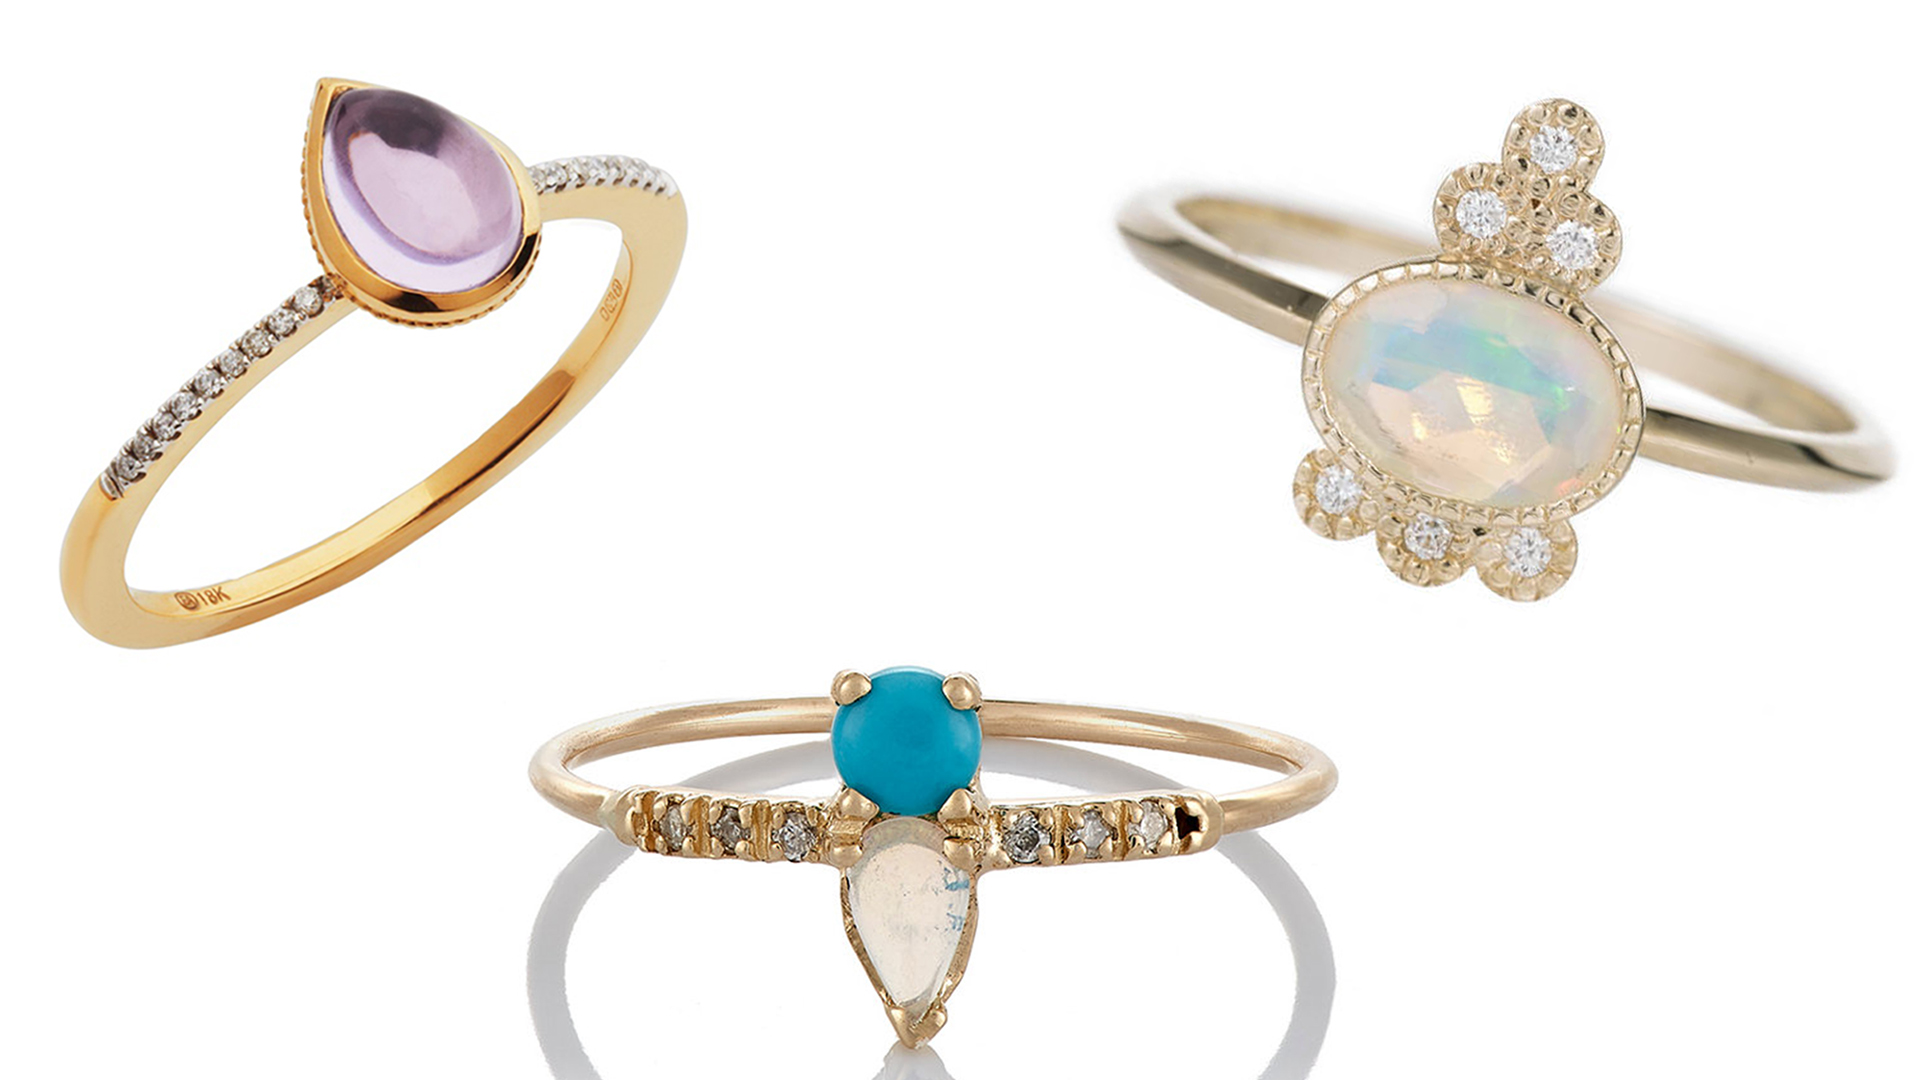 Unique Engagement Rings For The Modern Bride